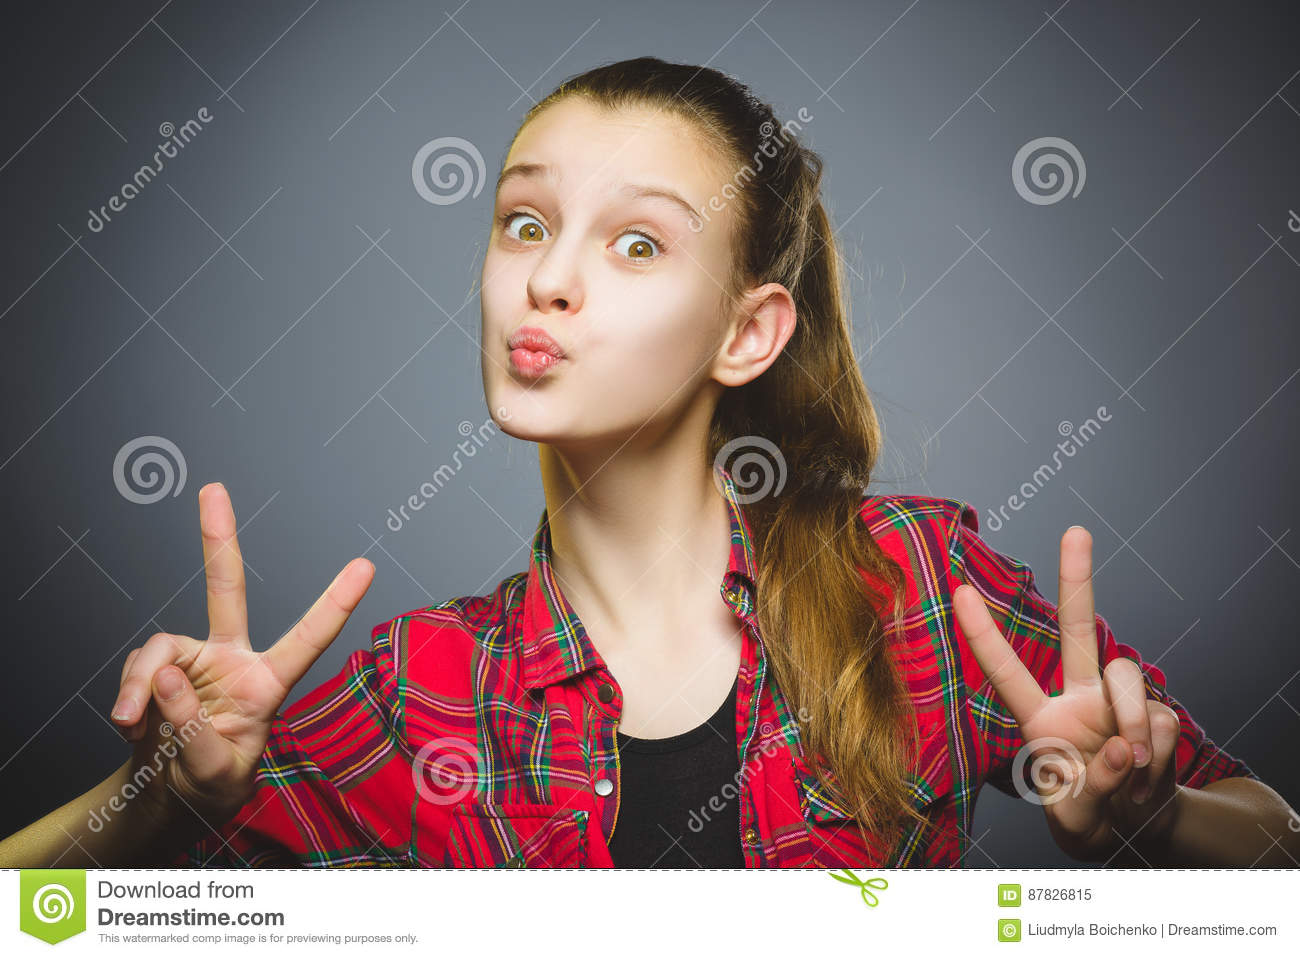 Coquettish girl. Closeup Portrait handsome teen smiling isolated on grey